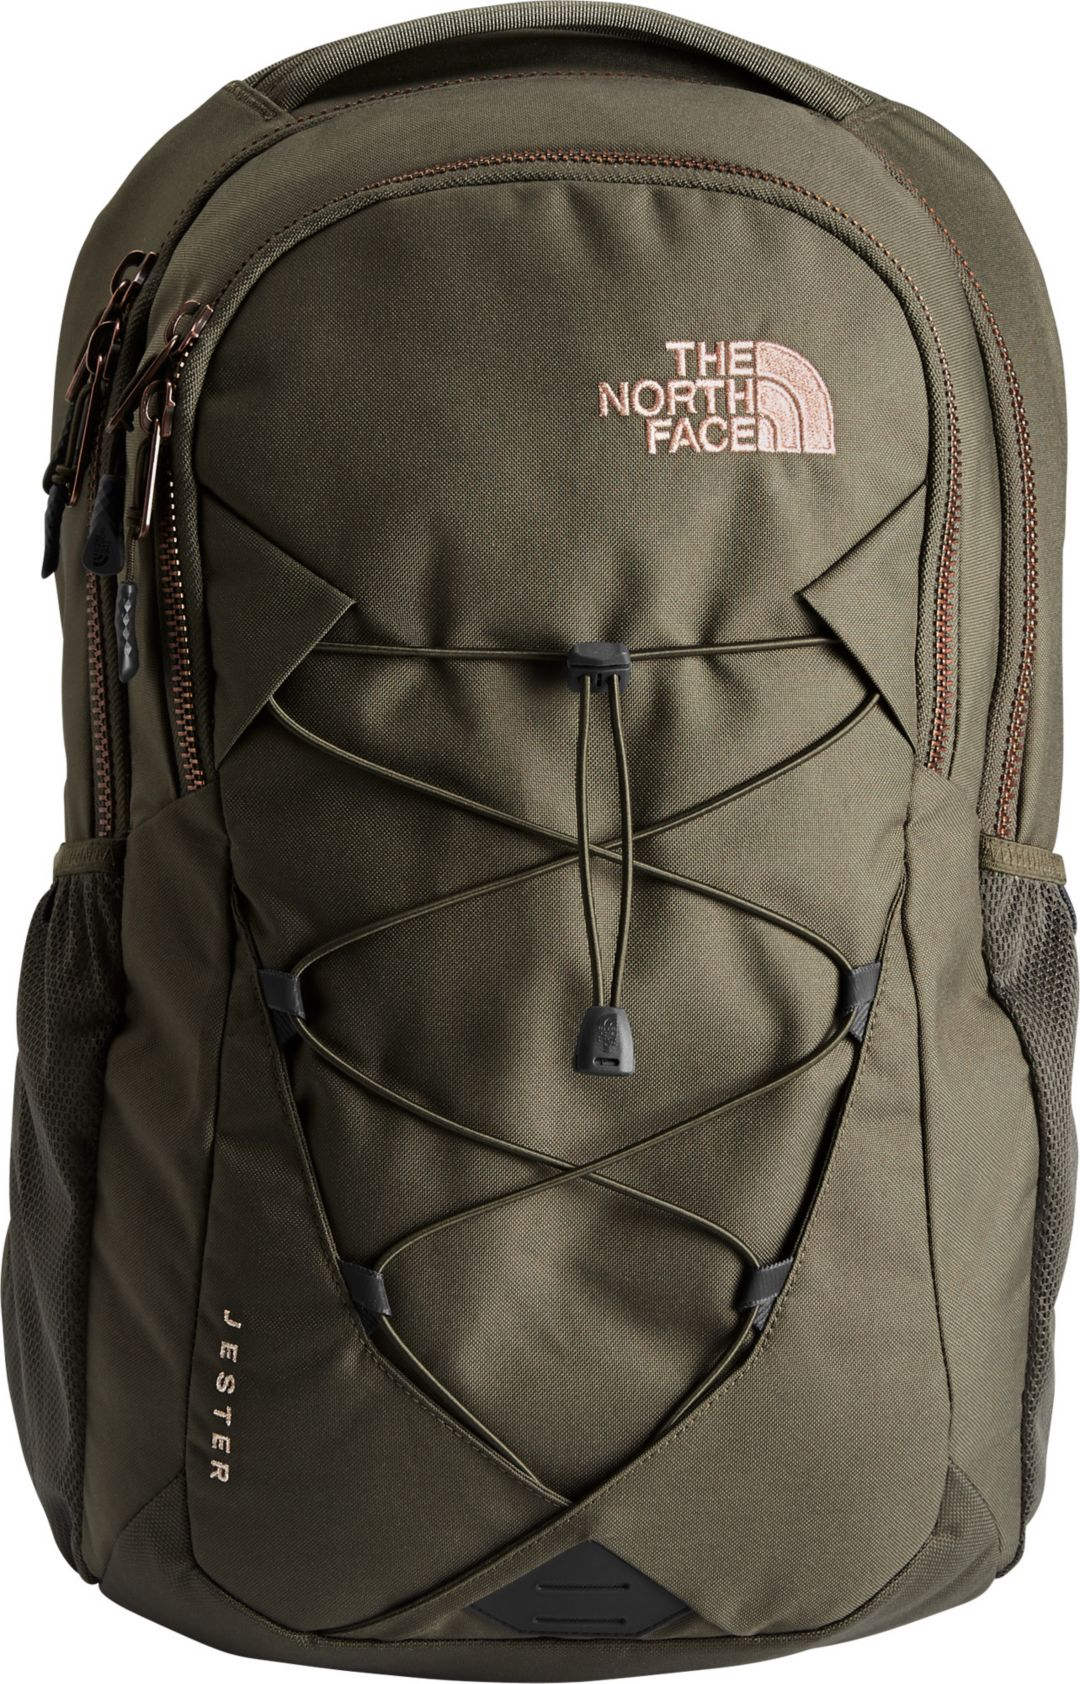 0e7427b37 The North Face Women's Jester Luxe Backpack